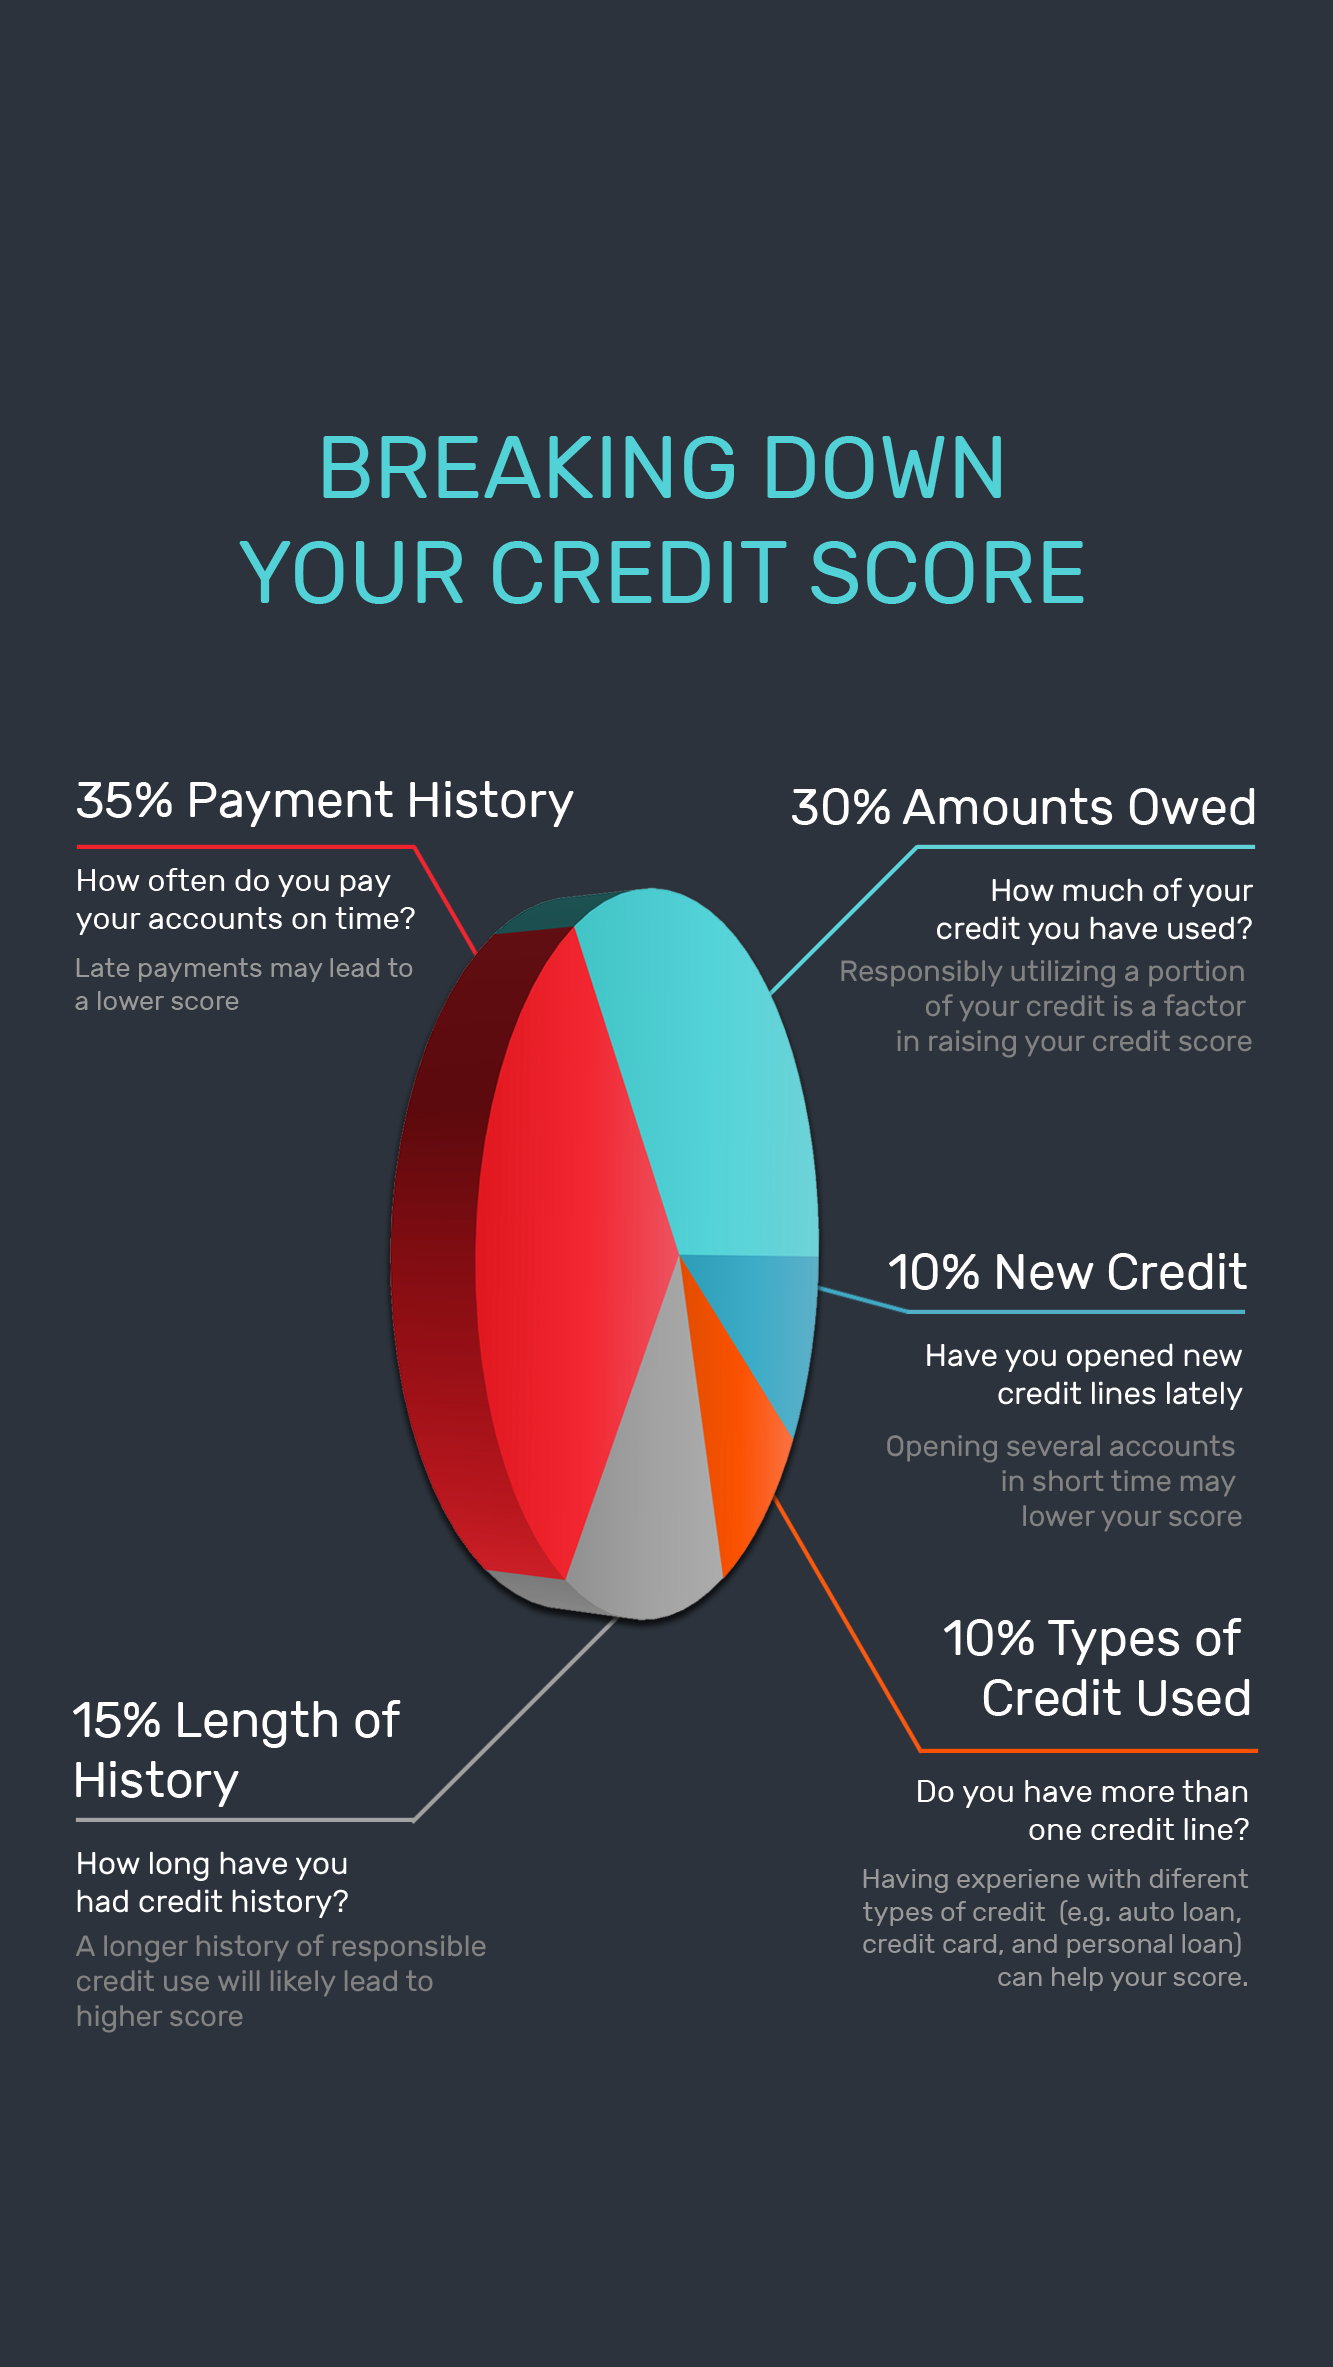 Breaking down our credit score - an overview of how your credit score is determined